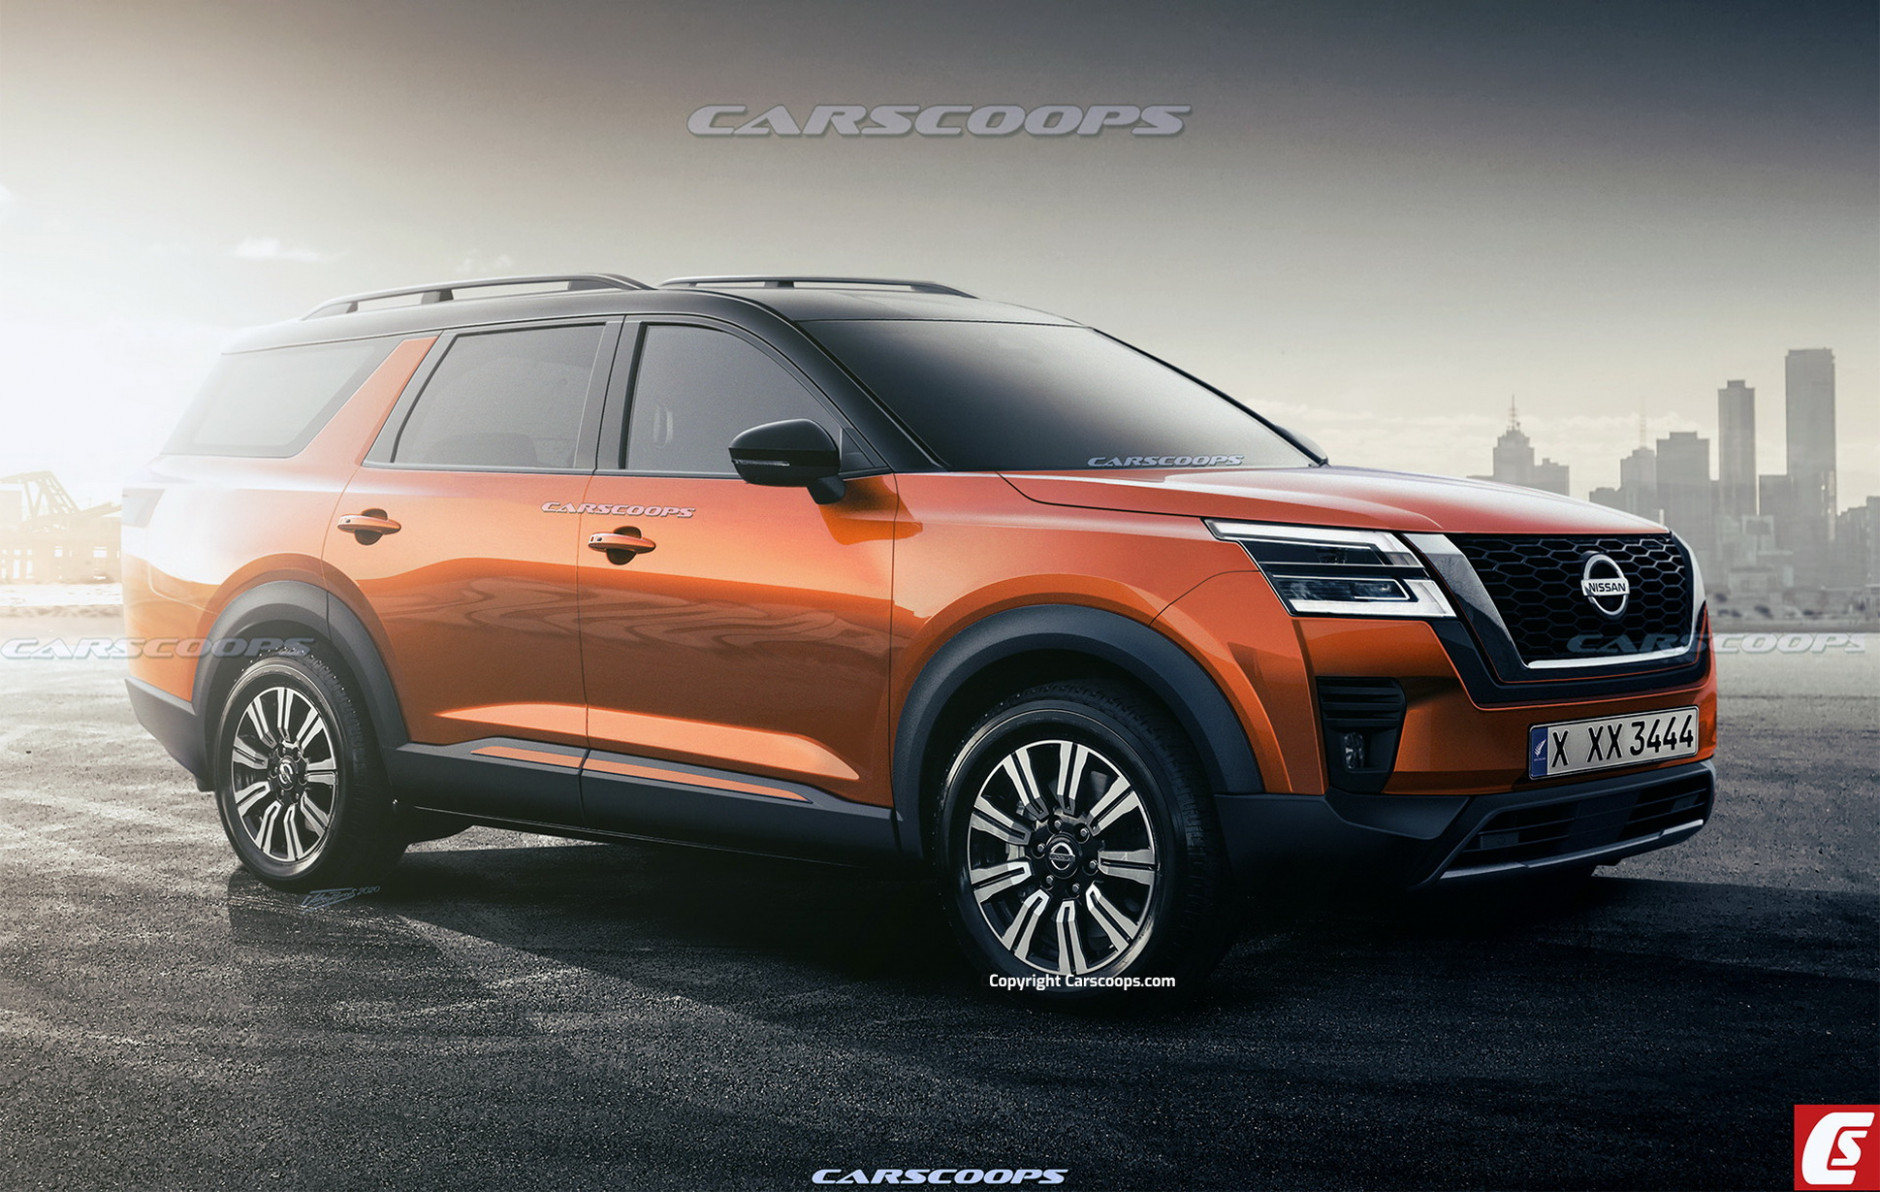 Price When Does The 2022 Ford Explorer Come Out